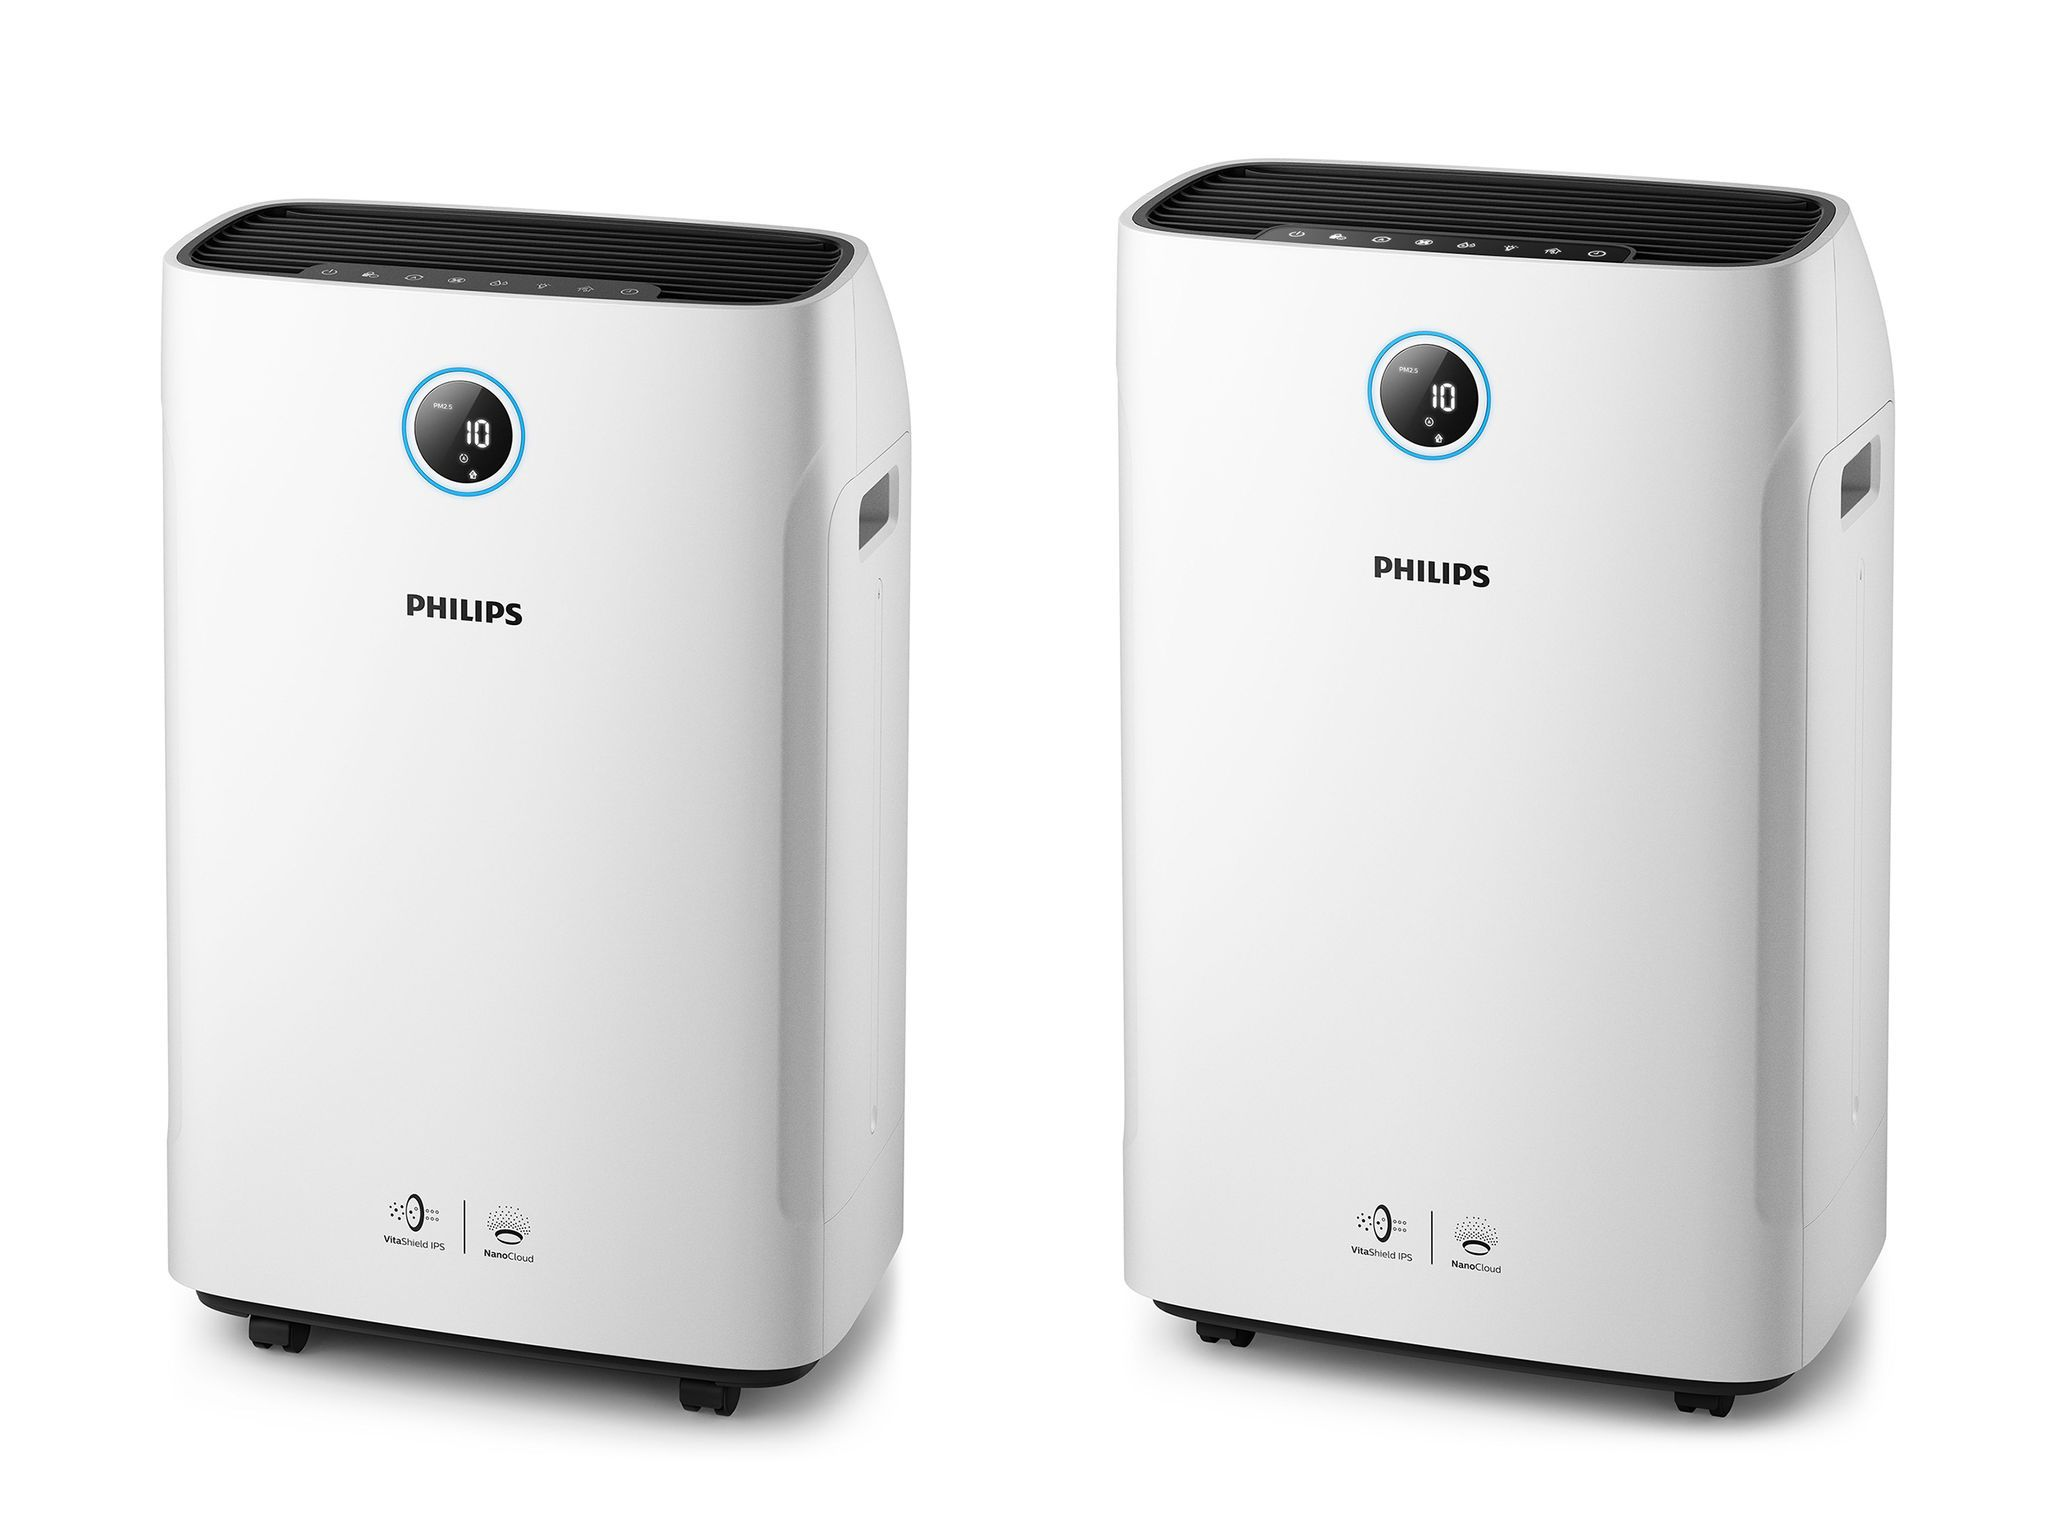 Philips 2 In 1 Air Purifier And Humidifier If Design Award 2018 Discipline Product Air Purifier Best Humidifier Purifier